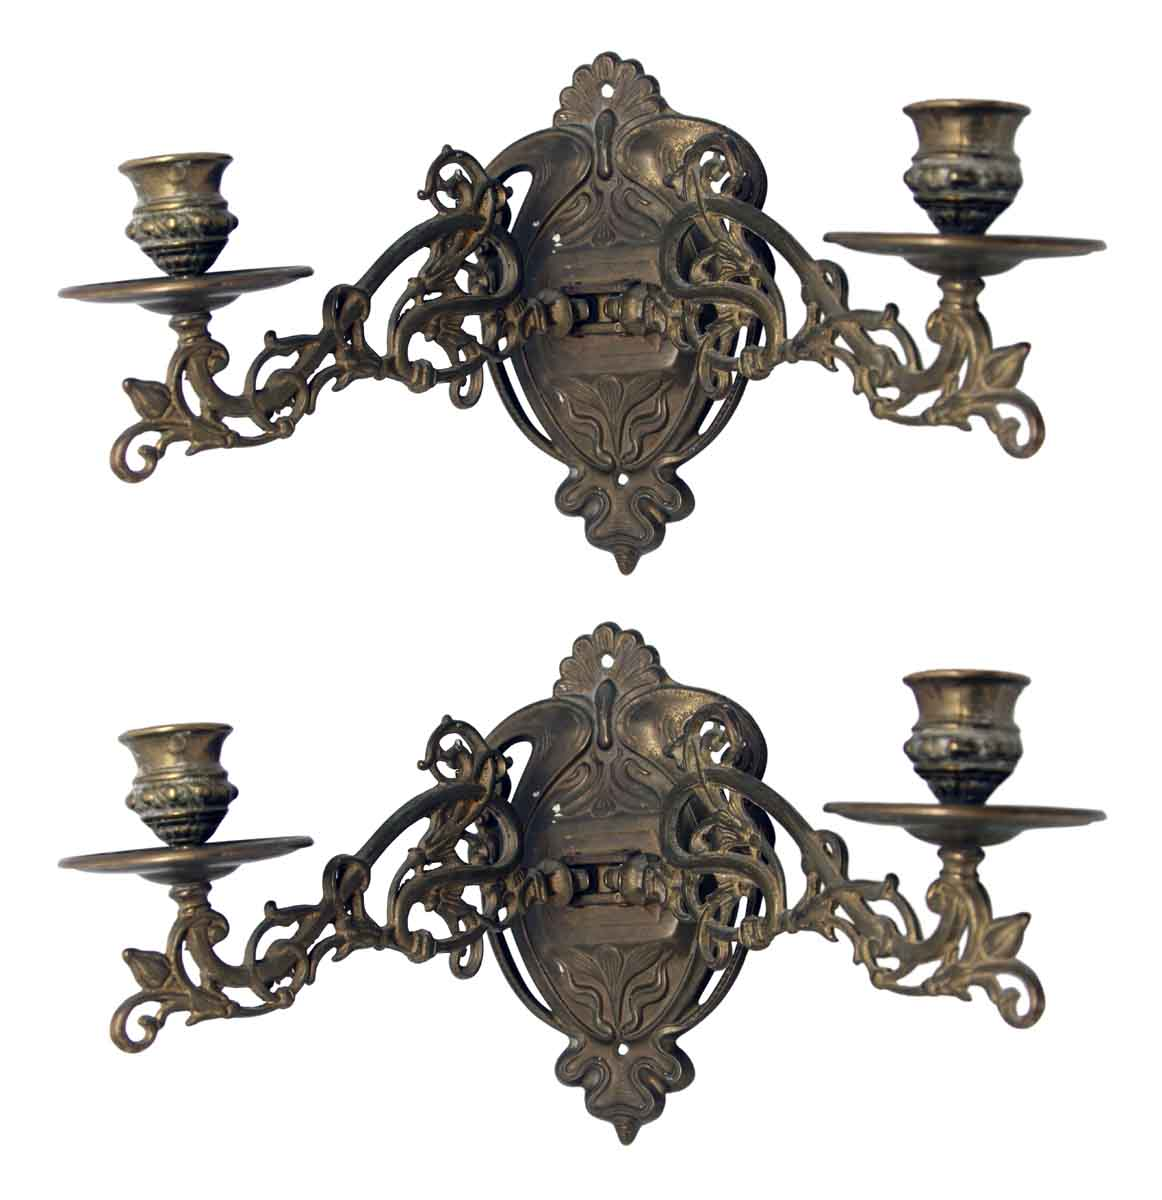 Wall Lights With Adjustable Arms : Art Nouveau Brass Sconces with Adjustable Arms Olde Good Things